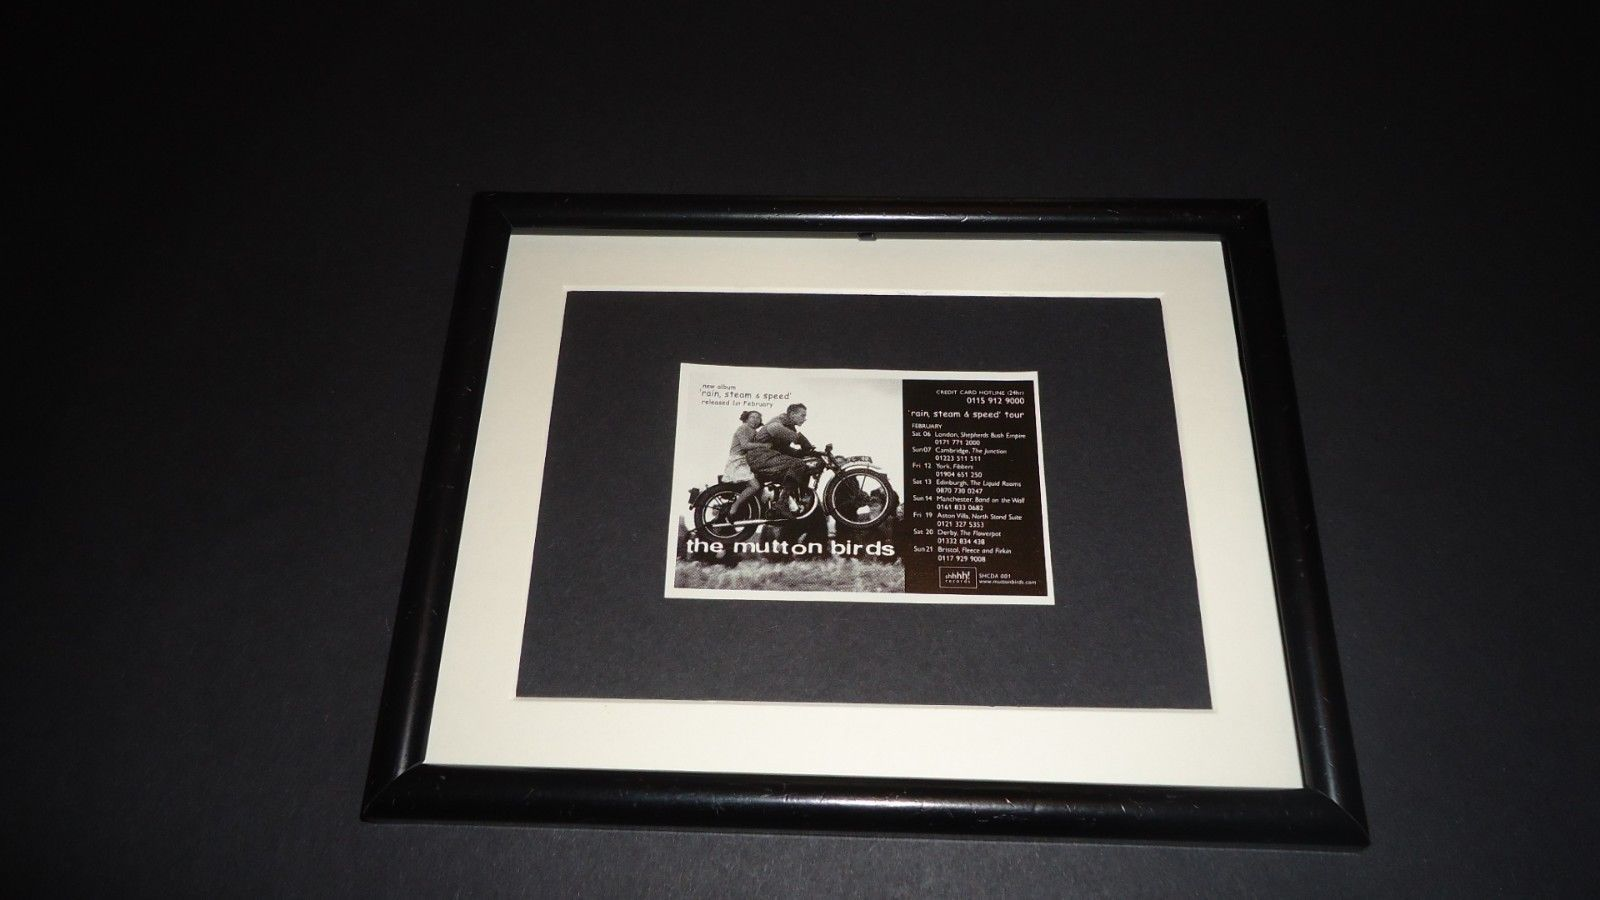 Primary image for The Mutton birds-1999 UK Tour-Original advert framed